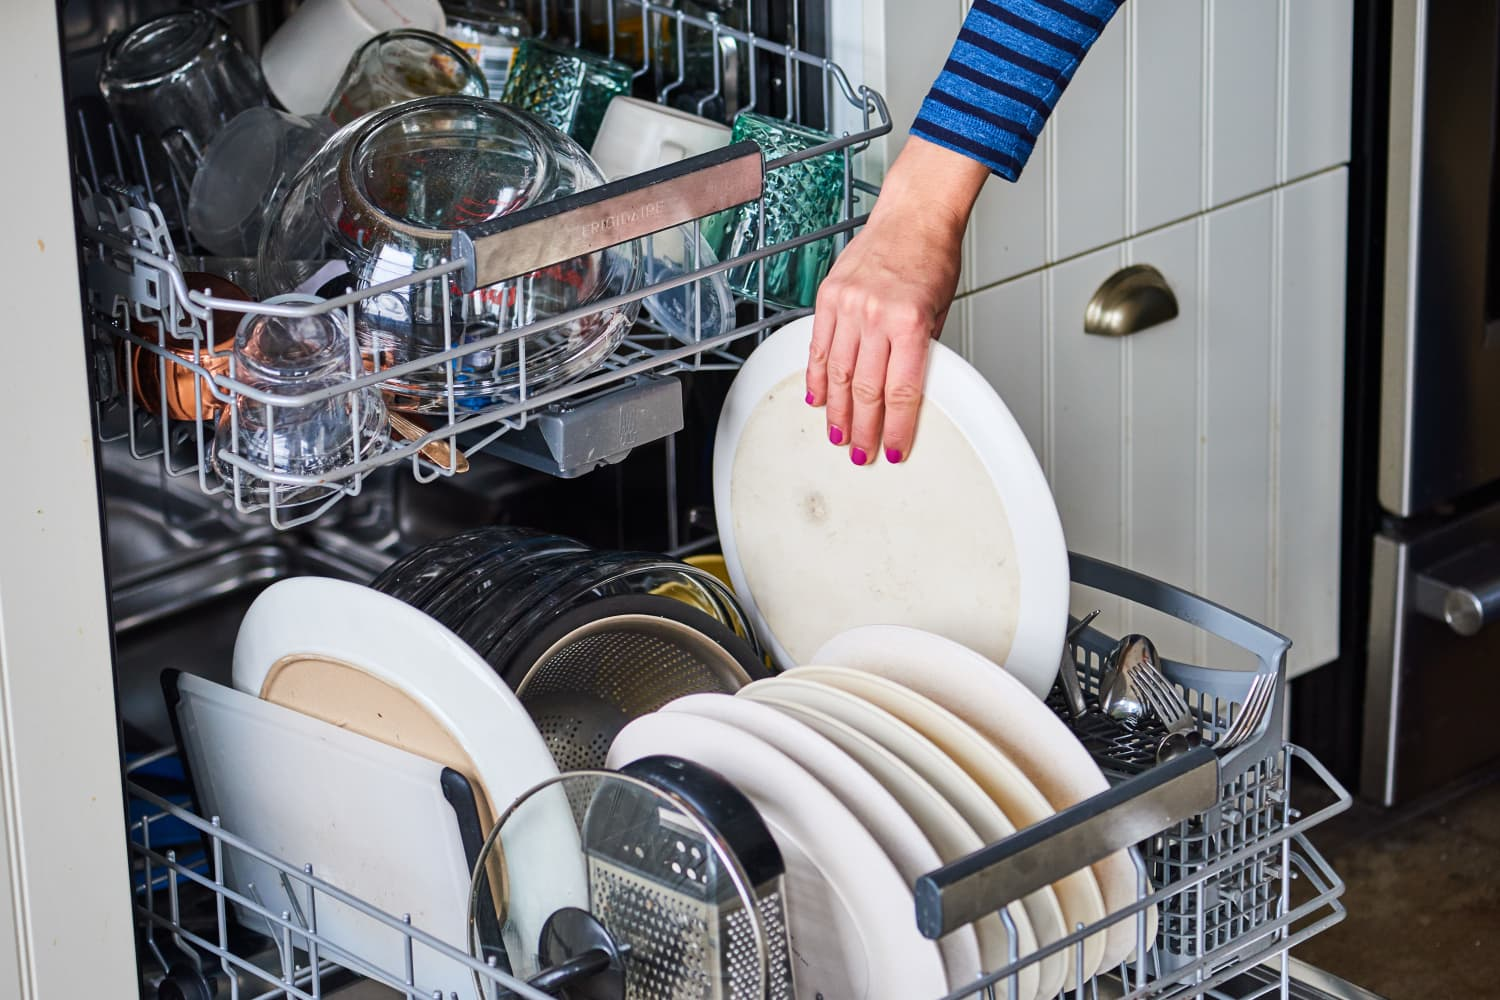 5 Things You Should Always Throw Into the Dishwasher If There's Room